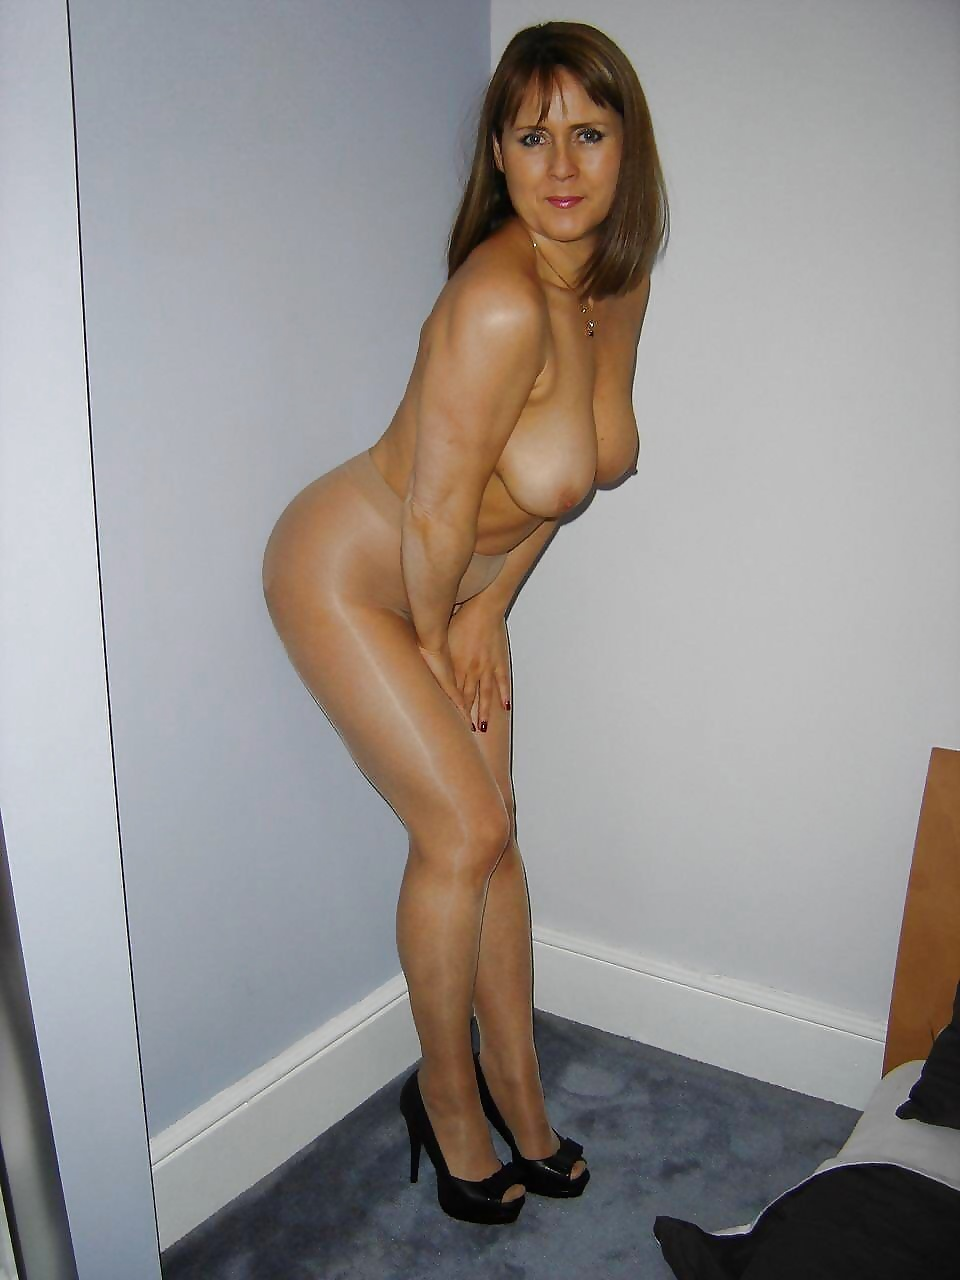 Check my milf in black opaque stockings and boots 5